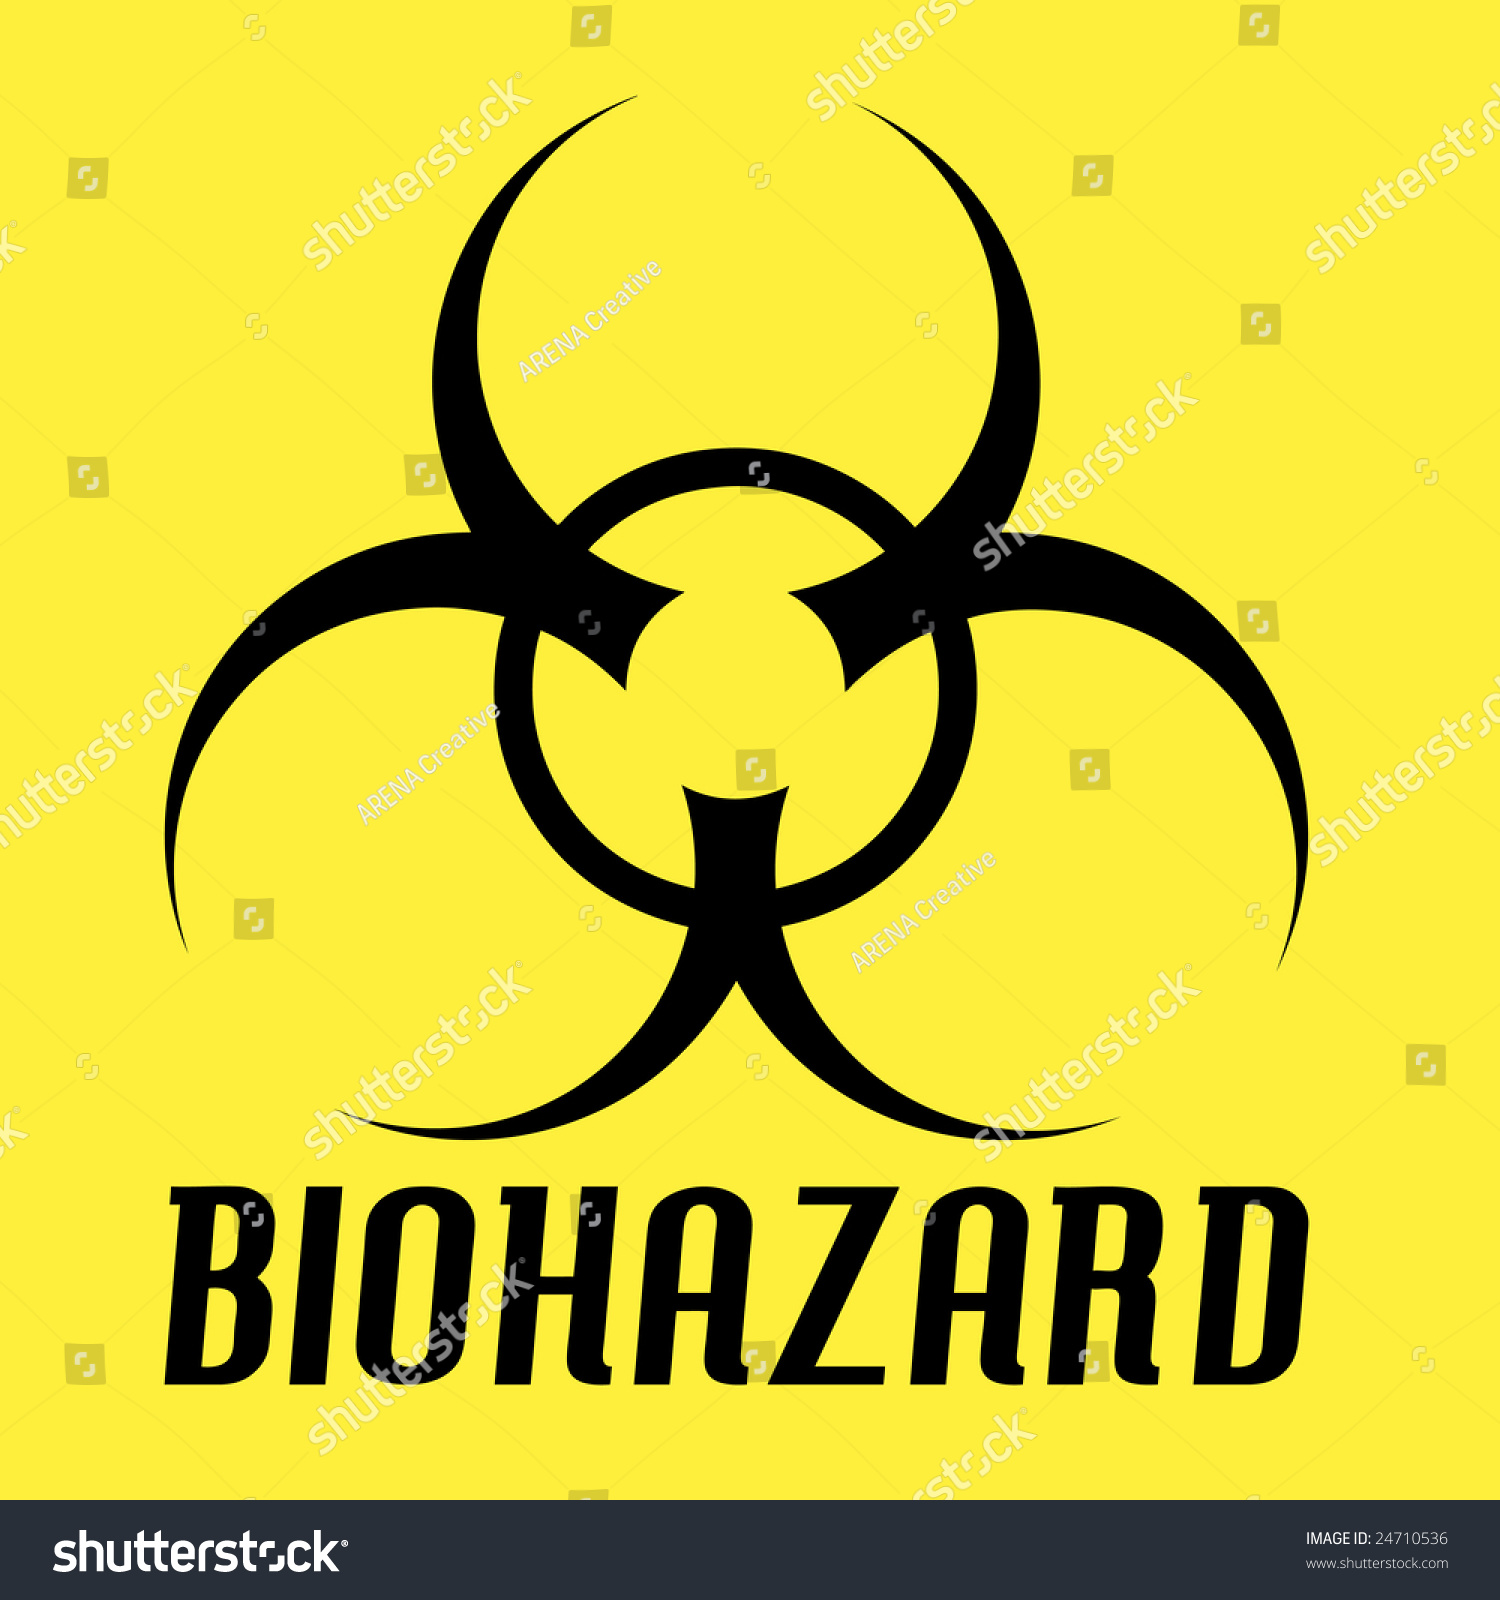 Biohazard Symbol Over Yellow All Elements Stock Vector Royalty Free